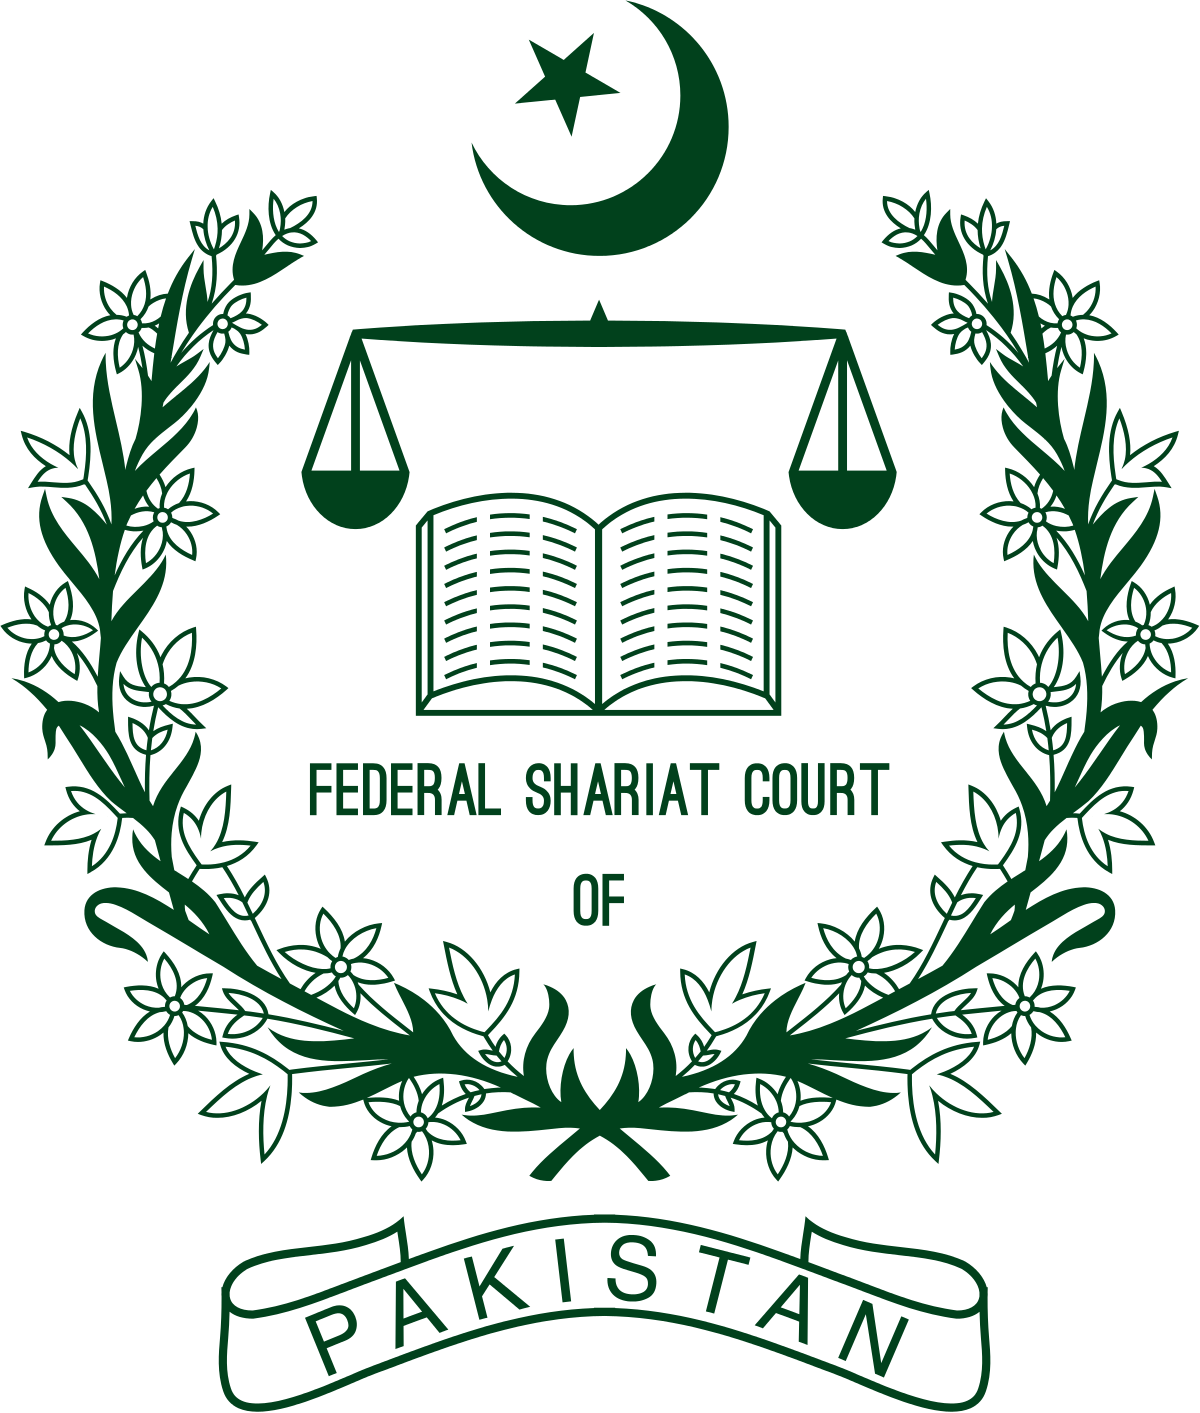 FEDERAL SHARIAT COURT OF PAKISTAN